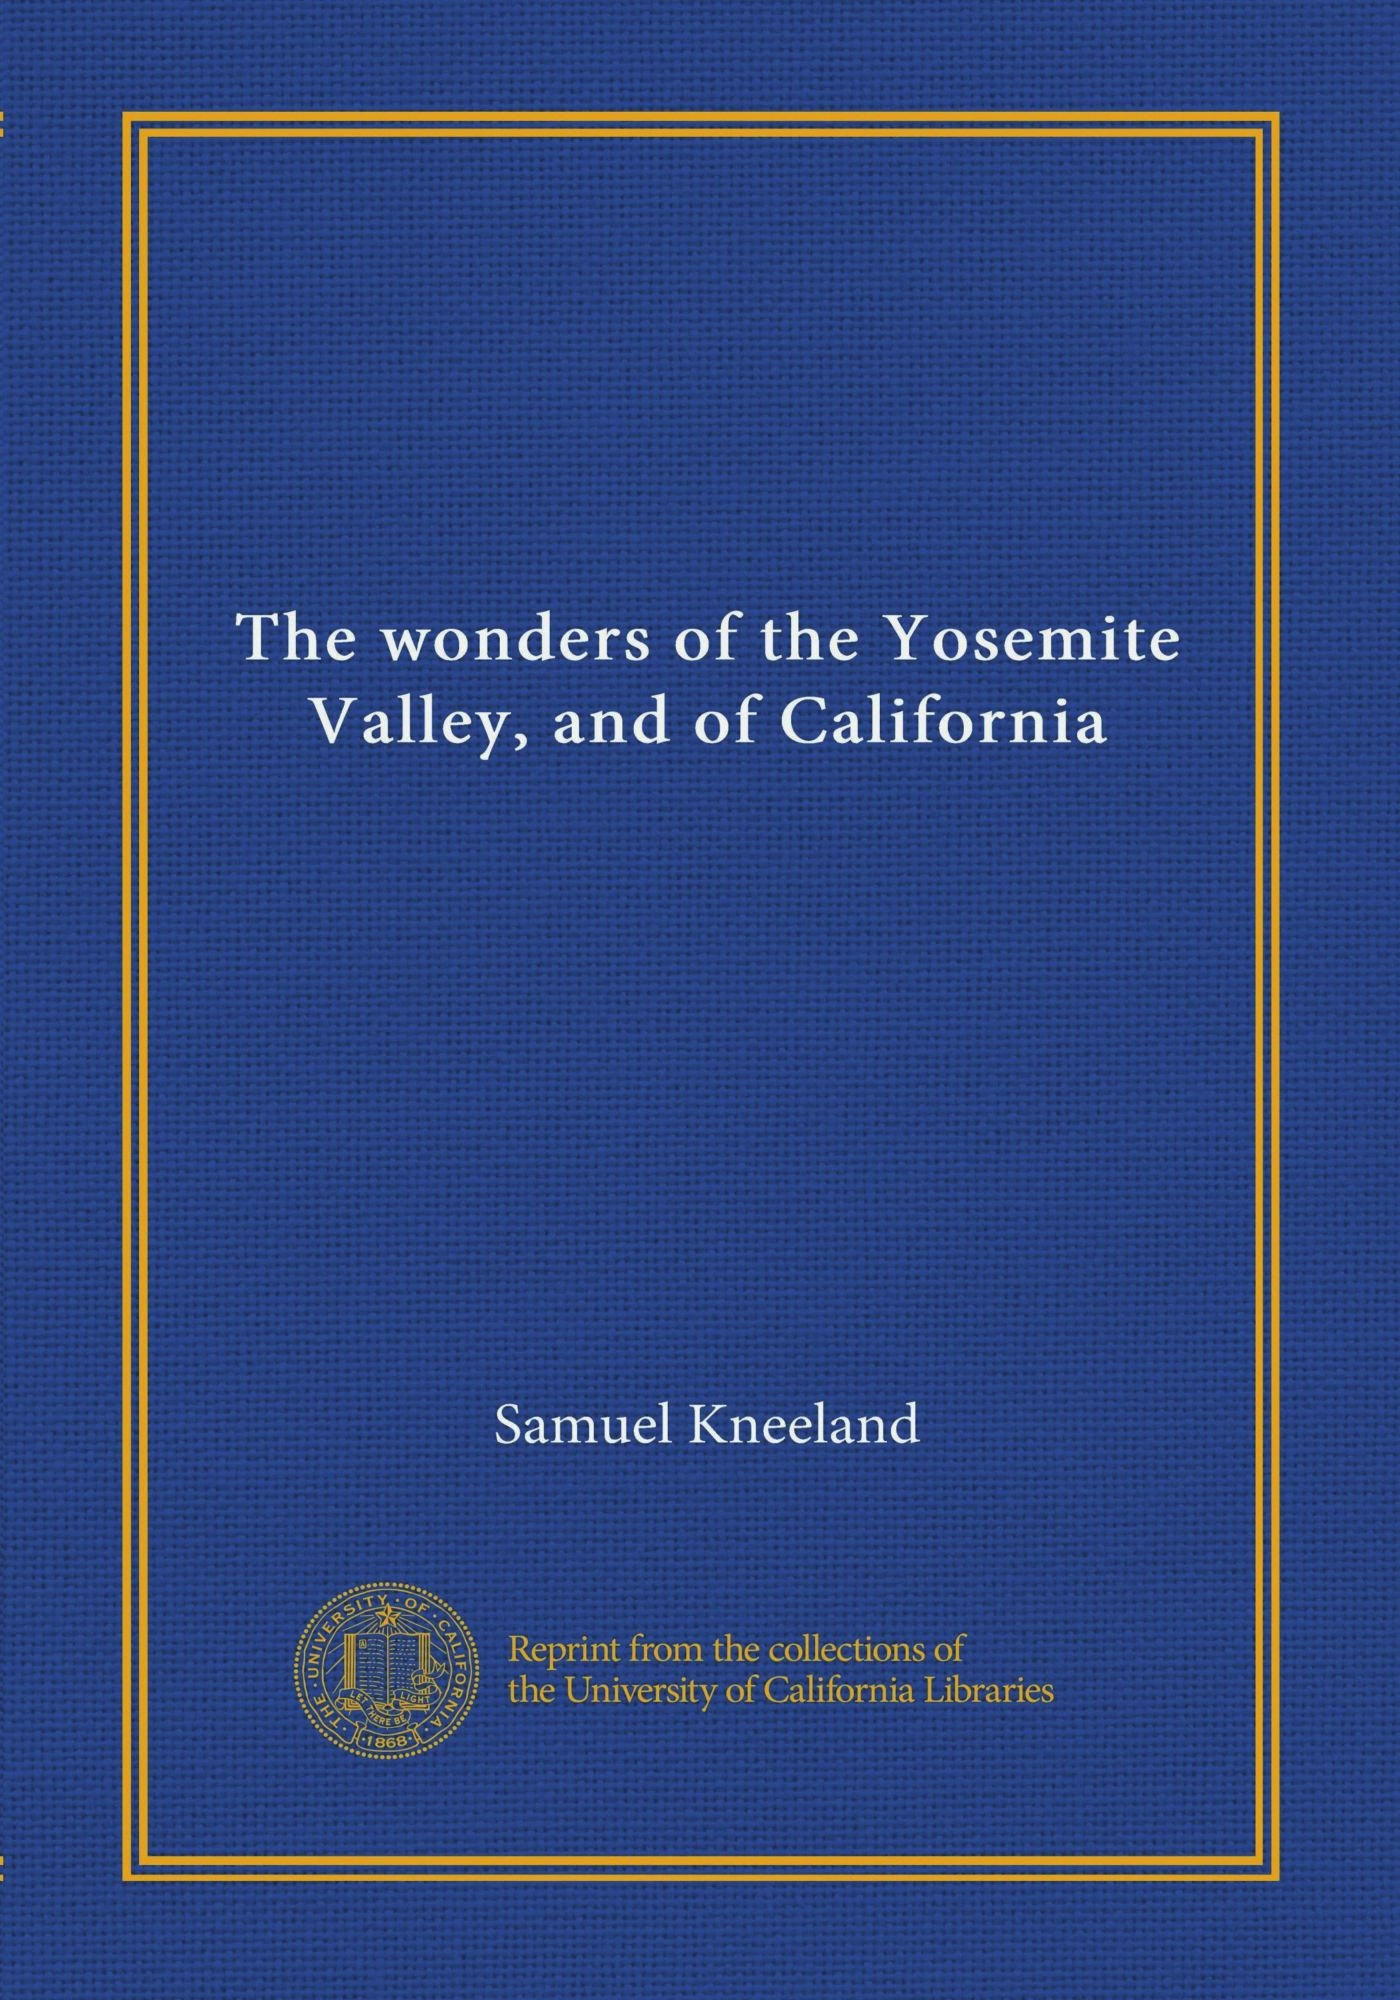 The wonders of the Yosemite Valley, and of California PDF